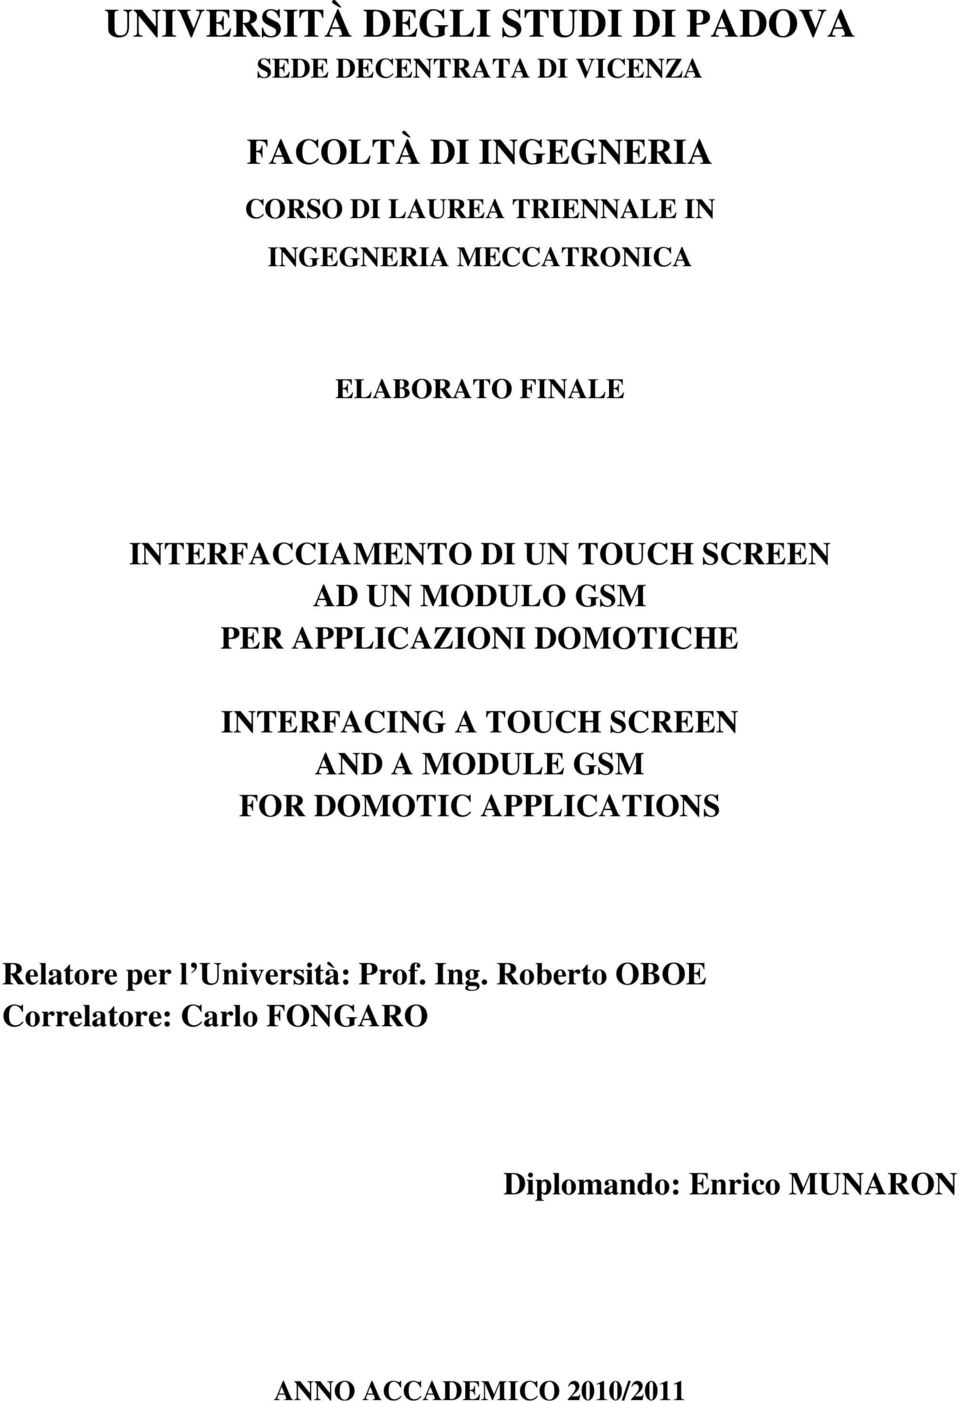 APPLICAZIONI DOMOTICHE INTERFACING A TOUCH SCREEN AND A MODULE GSM FOR DOMOTIC APPLICATIONS Relatore per l